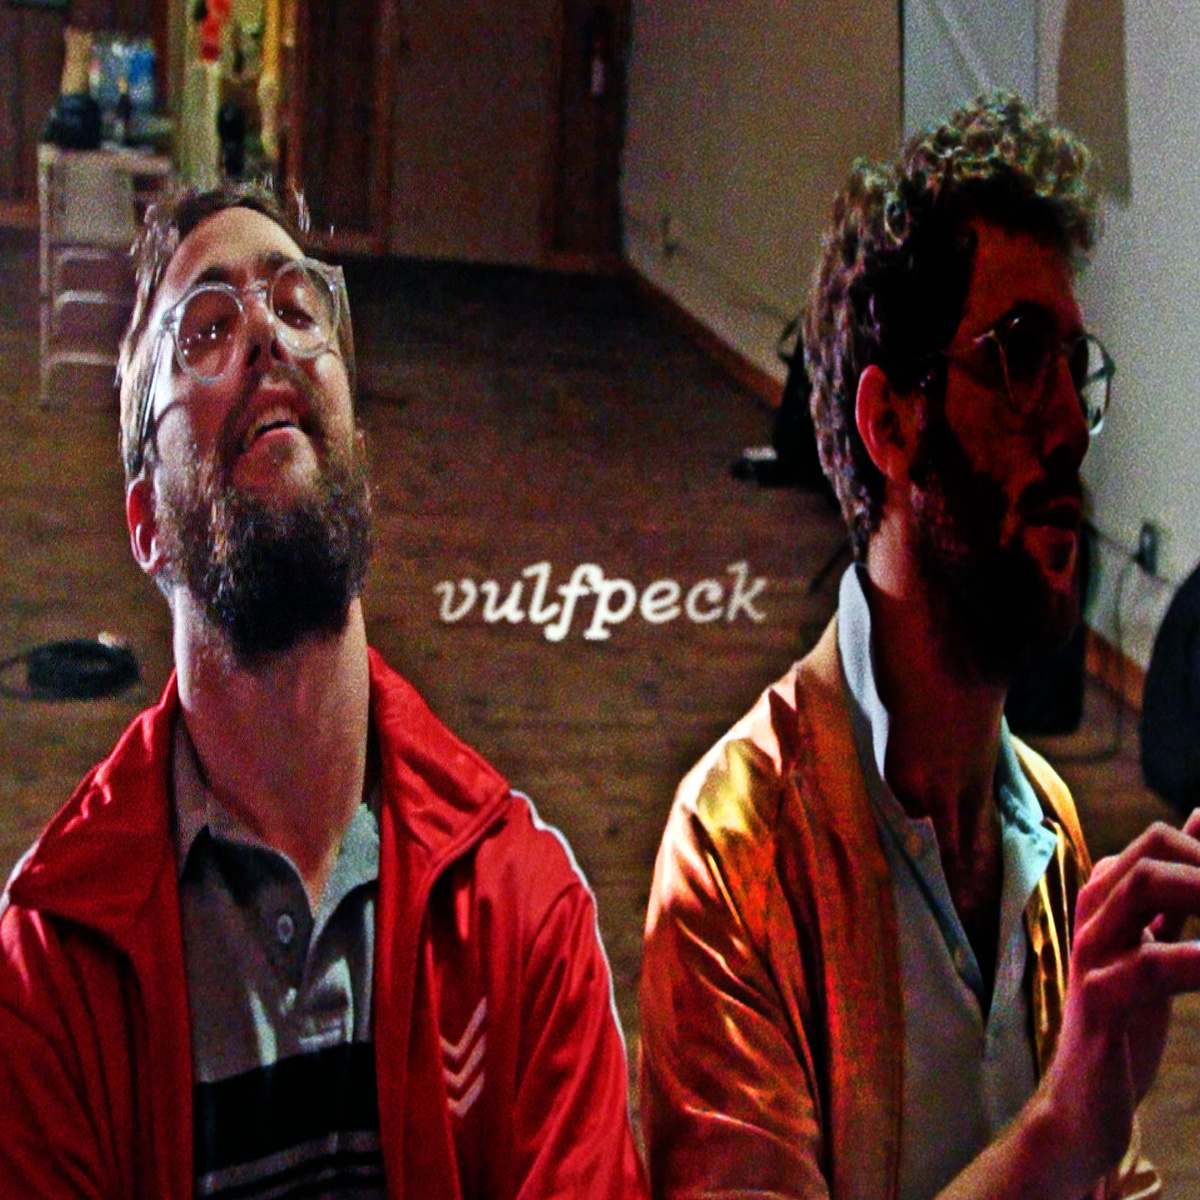 VULFPECK – Adrienne & Adrianne (Video)